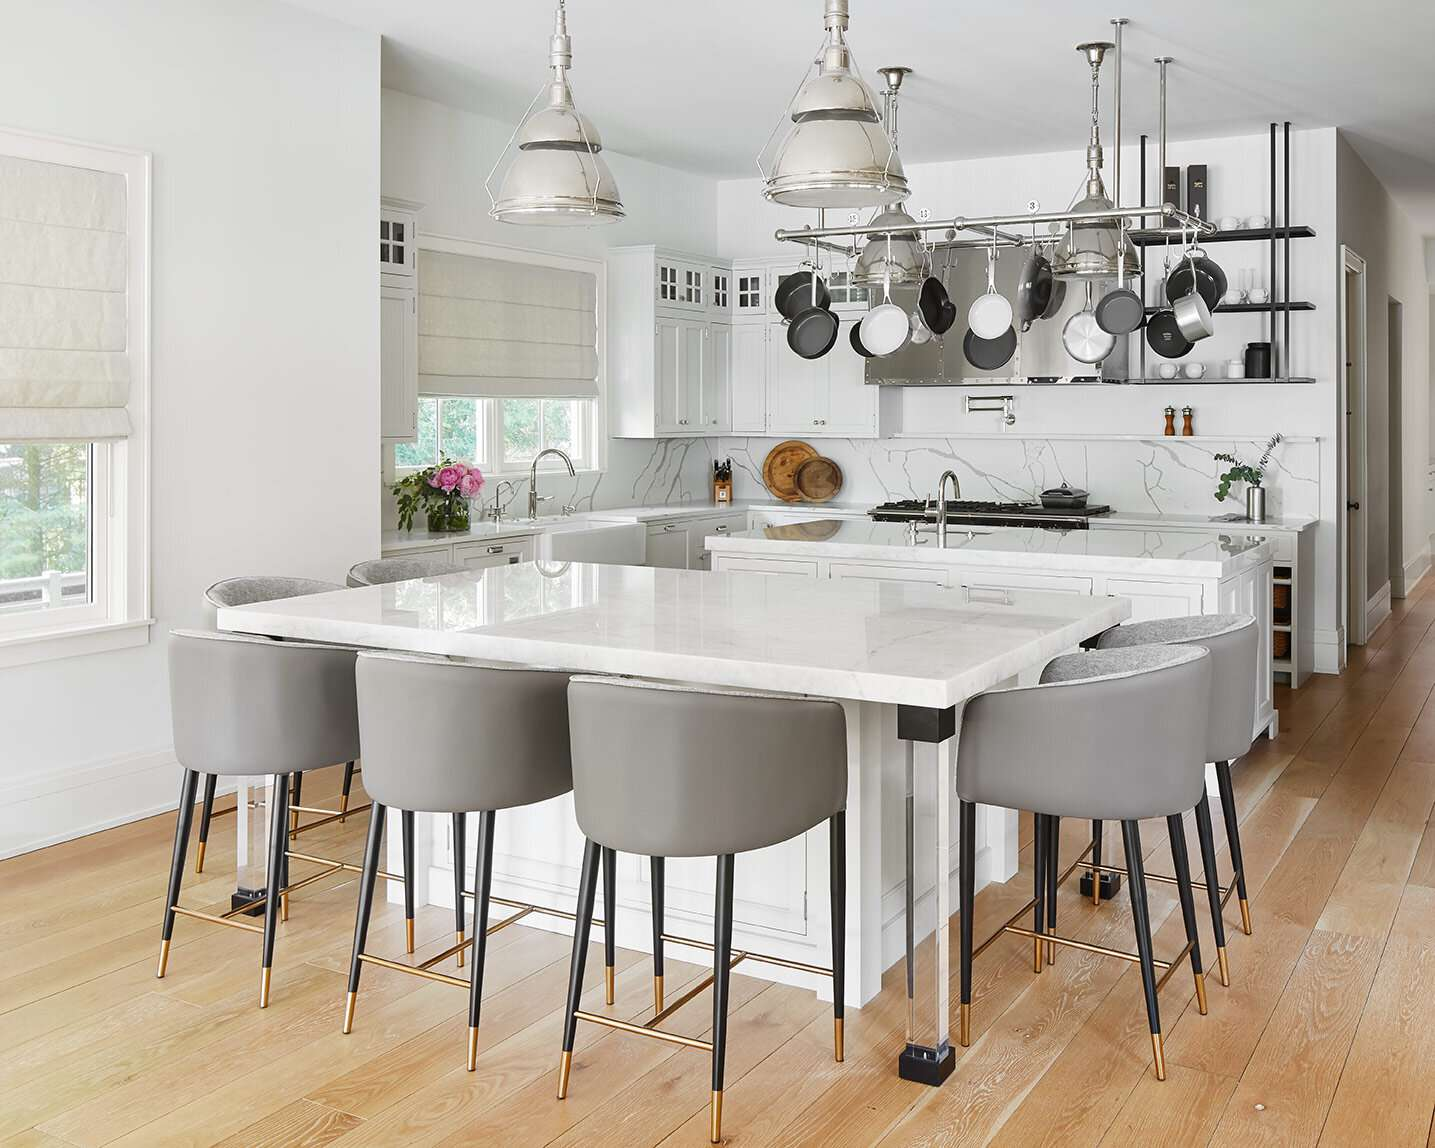 White kitchen with stainless steel pots hanging from ceiling.